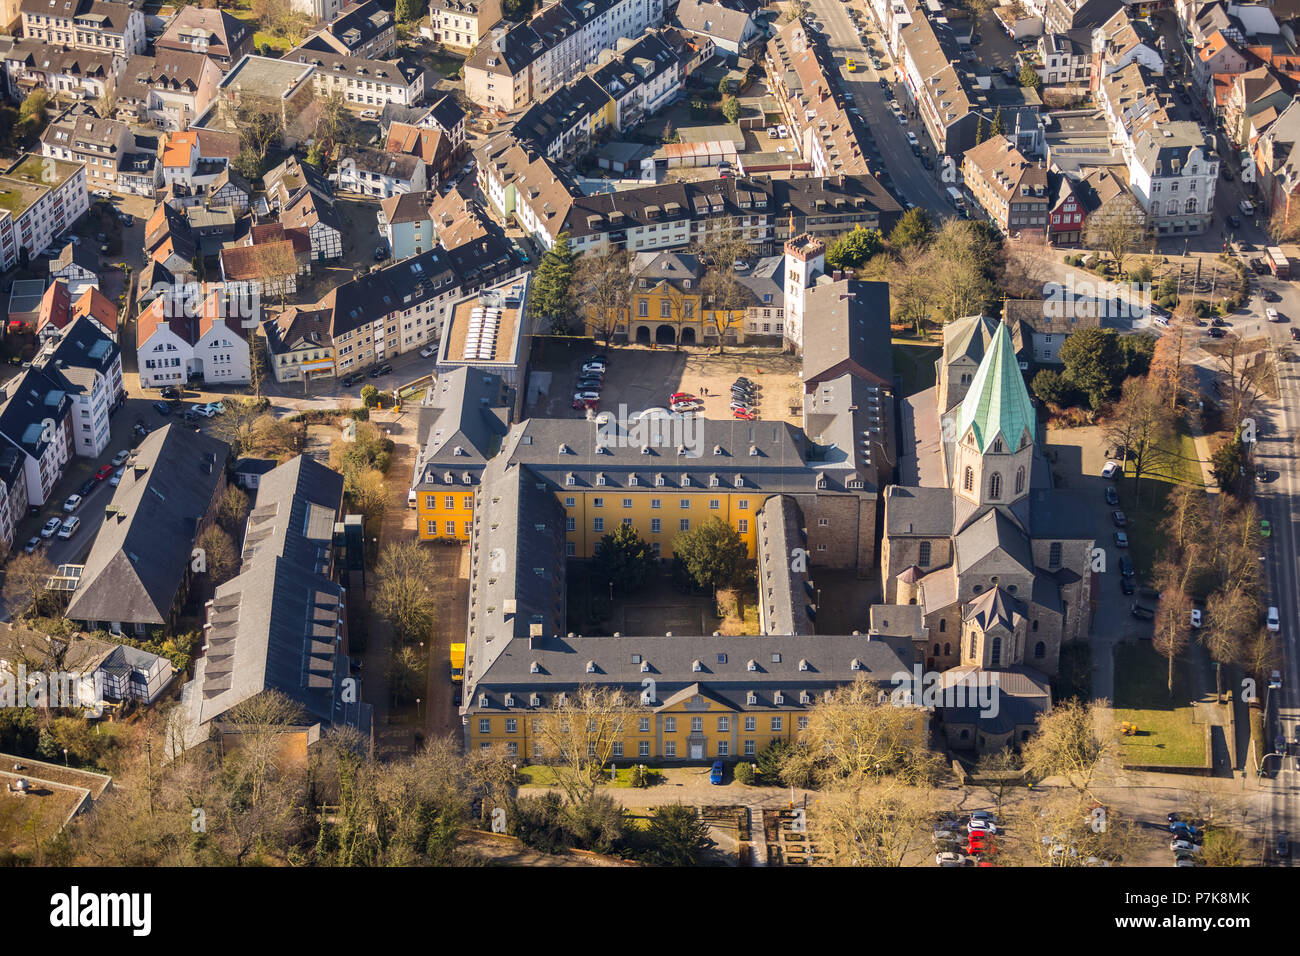 Folkwang University of the Arts, Folkwang Library, Folkwang Dance Studio, Pina Bausch Theater next to the Basilica of St. Ludgerus Essen-Werden in Essen, Ruhrgebiet, North Rhine-Westphalia, Germany - Stock Image